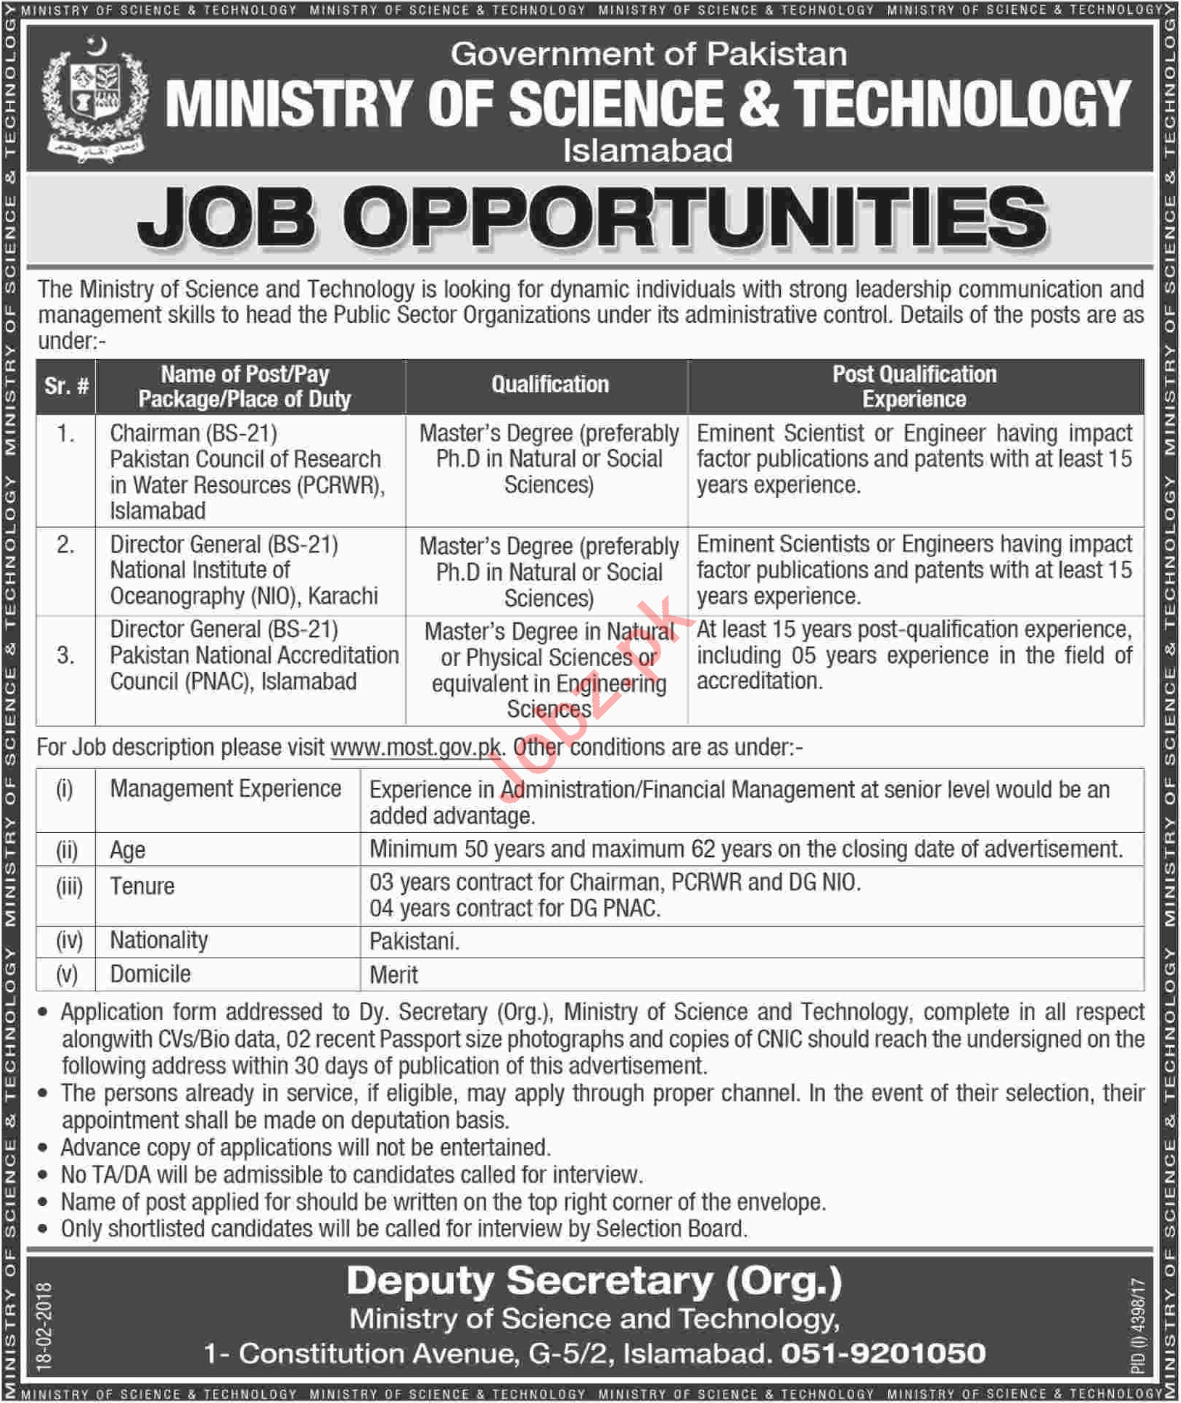 Ministry of Science & Technology MOST Islamabad Jobs 2018